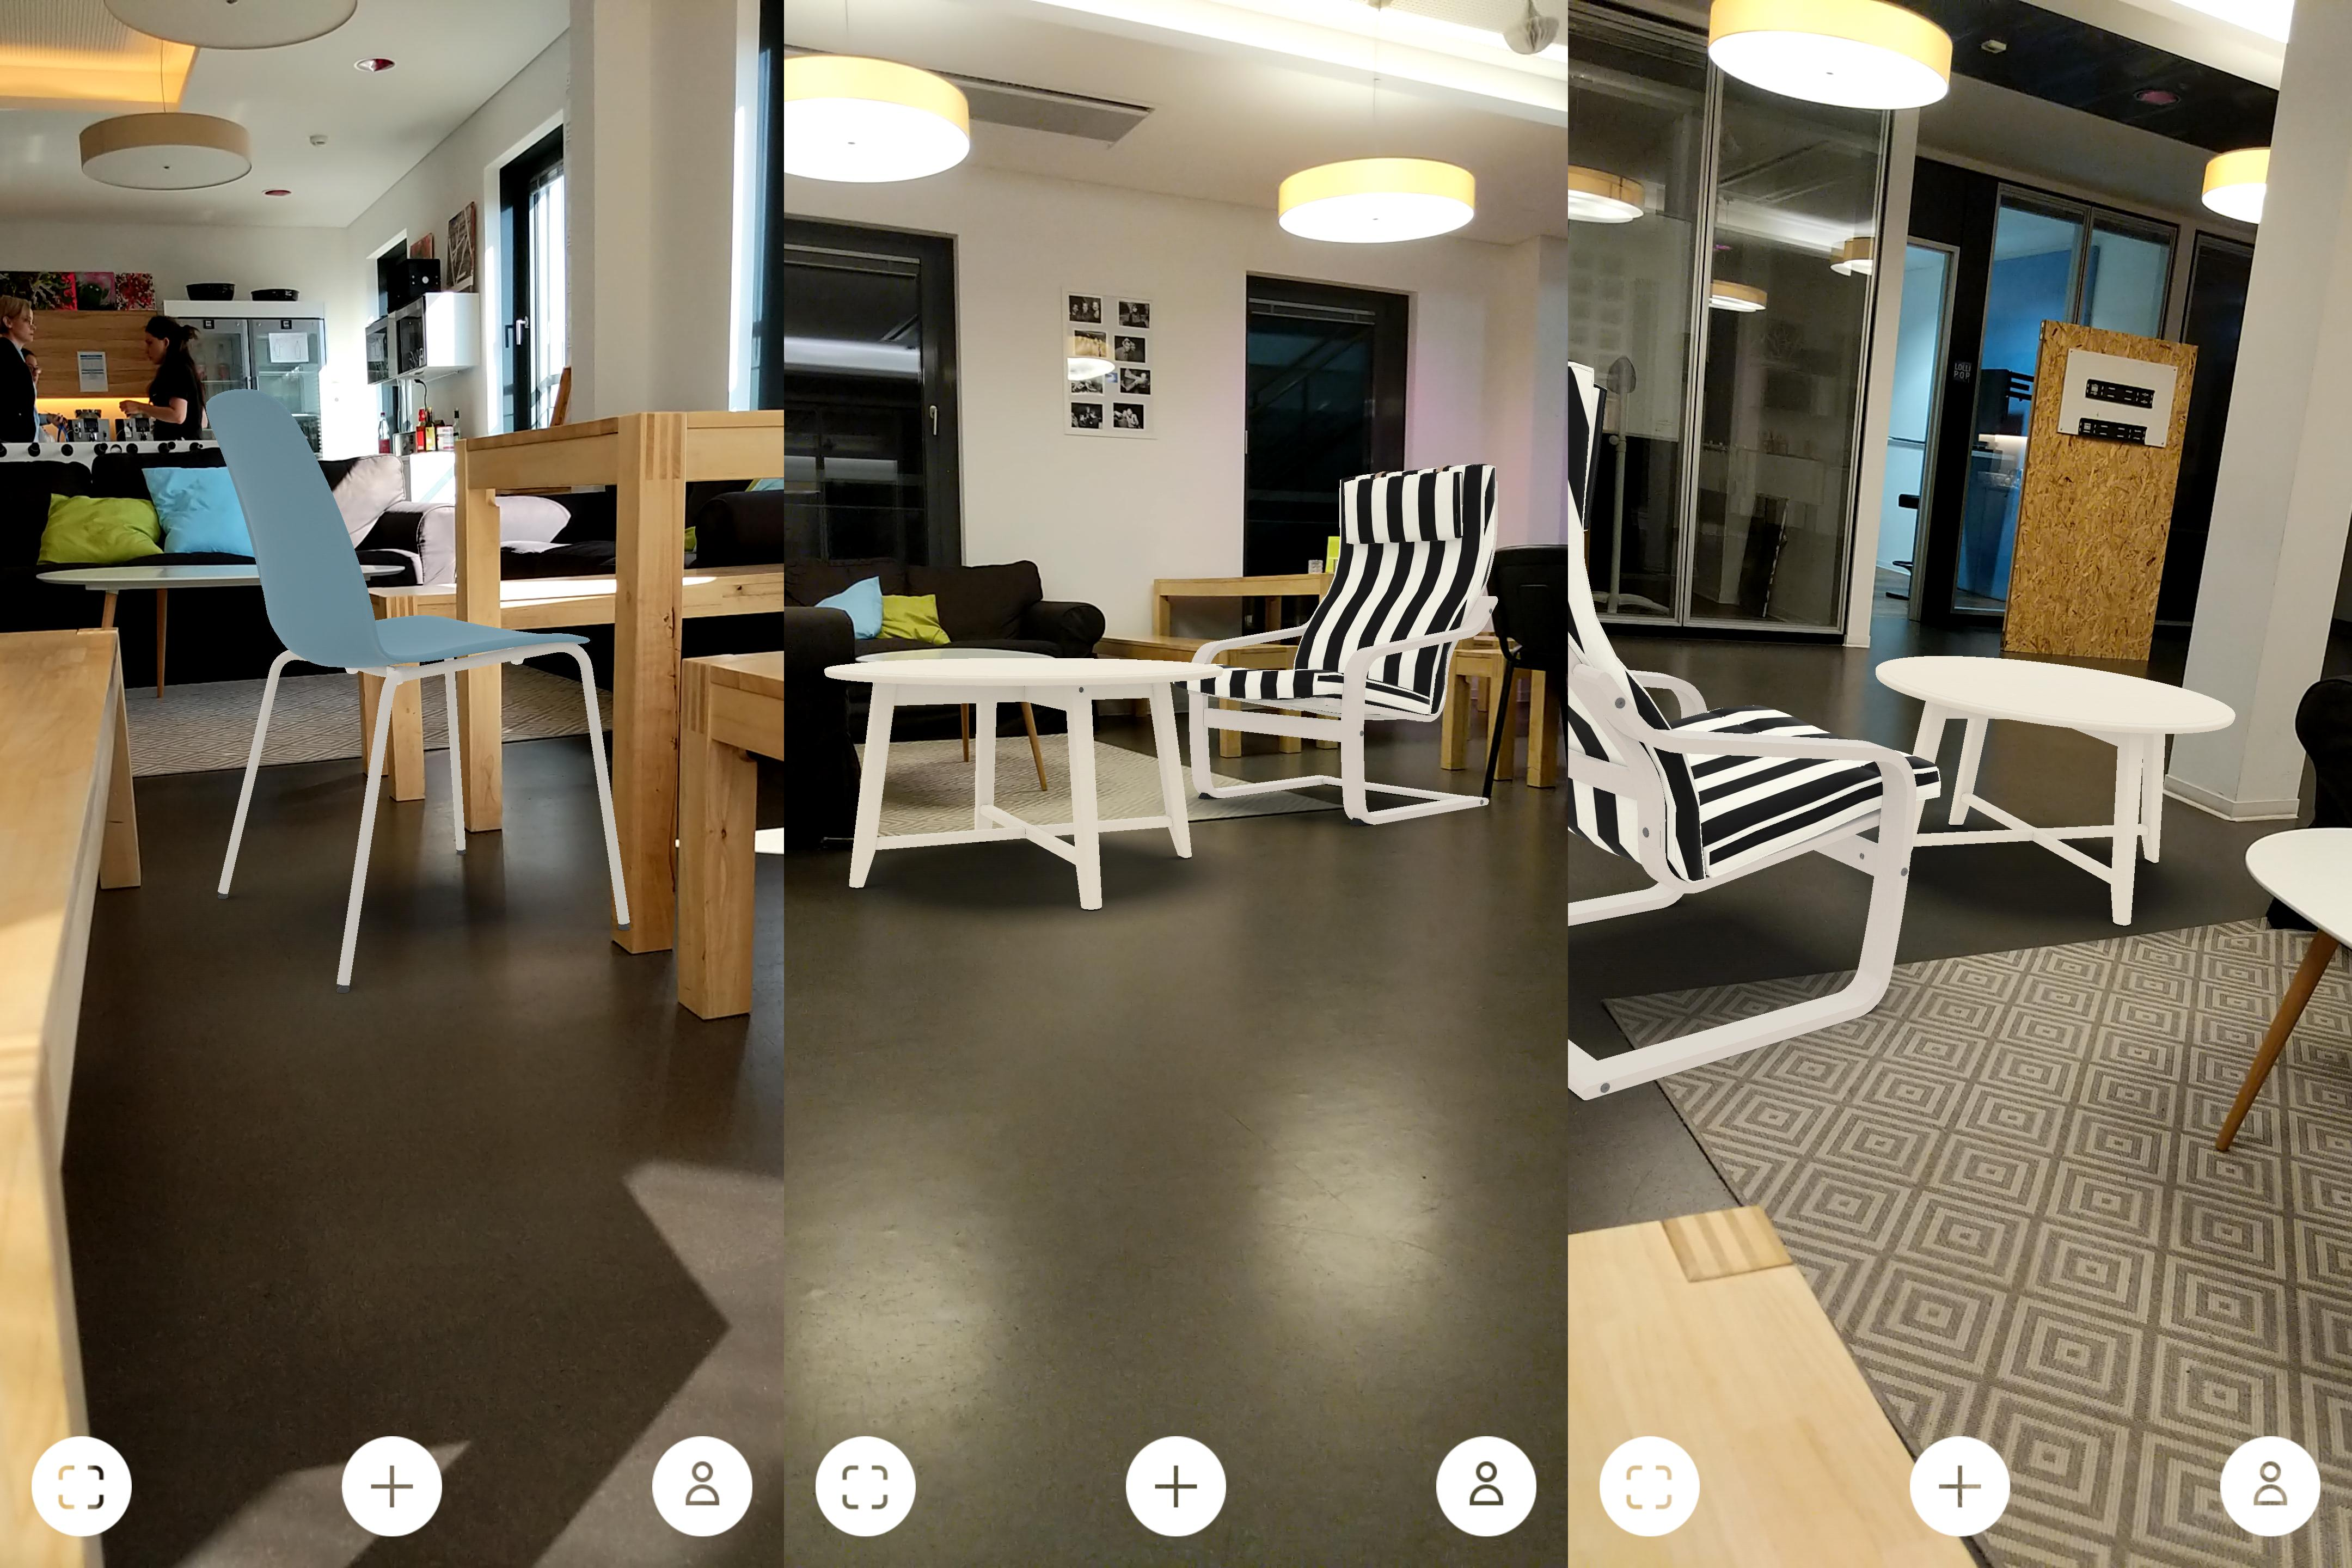 Ikea Home Planner Italiano ikea place ar app reveals which furniture fits your home